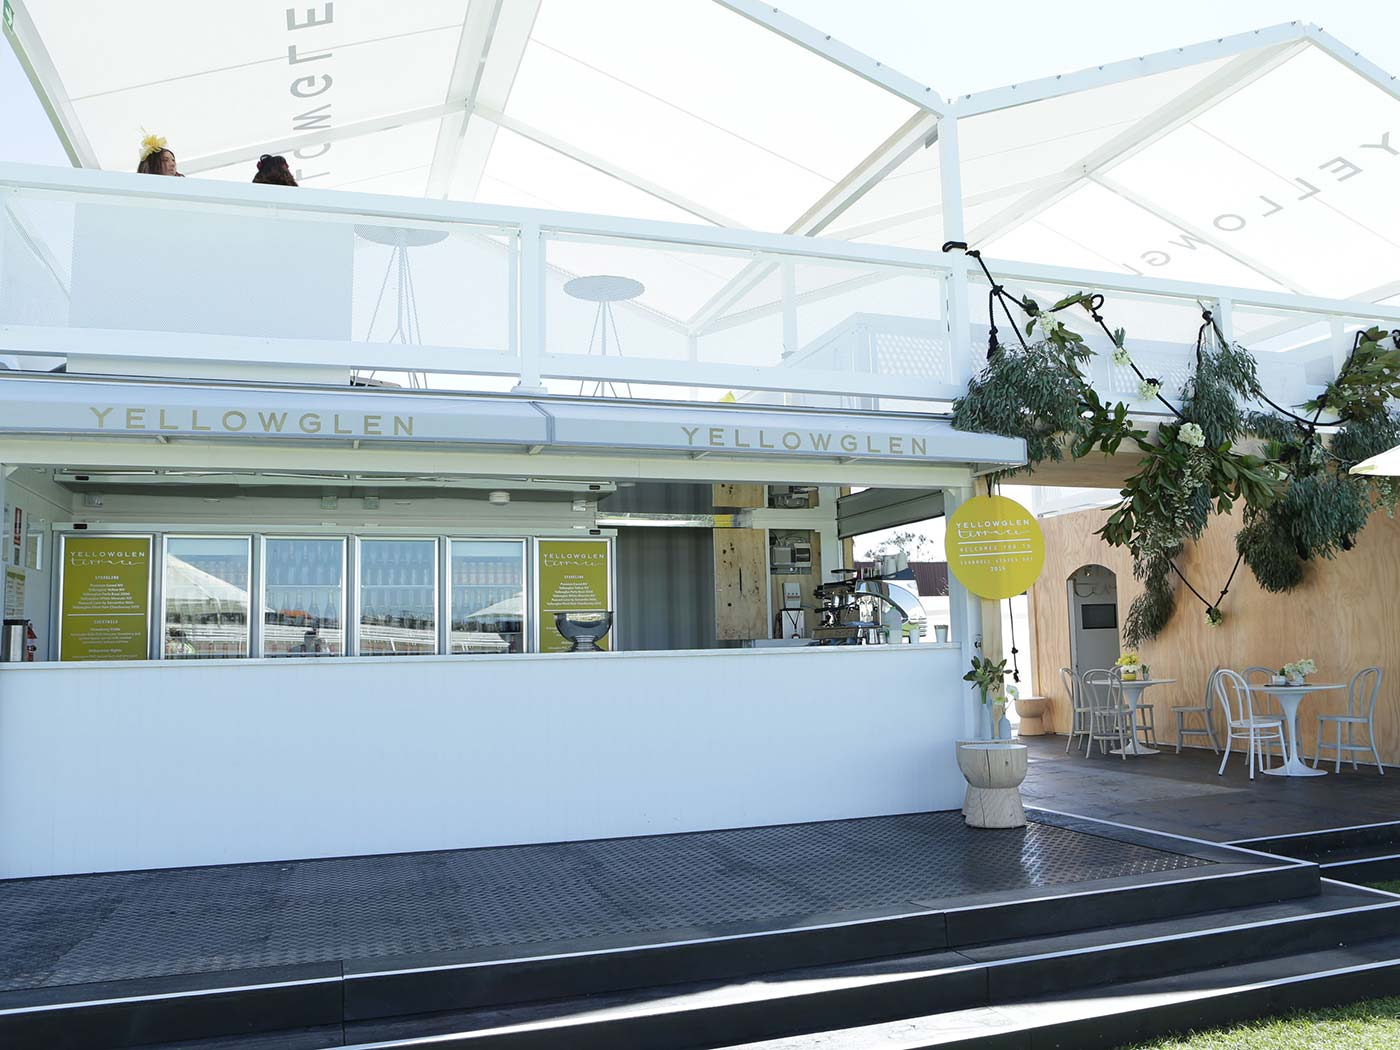 Yellowglen-Terrace-Shipping-Container-Hospitality-Activation-7